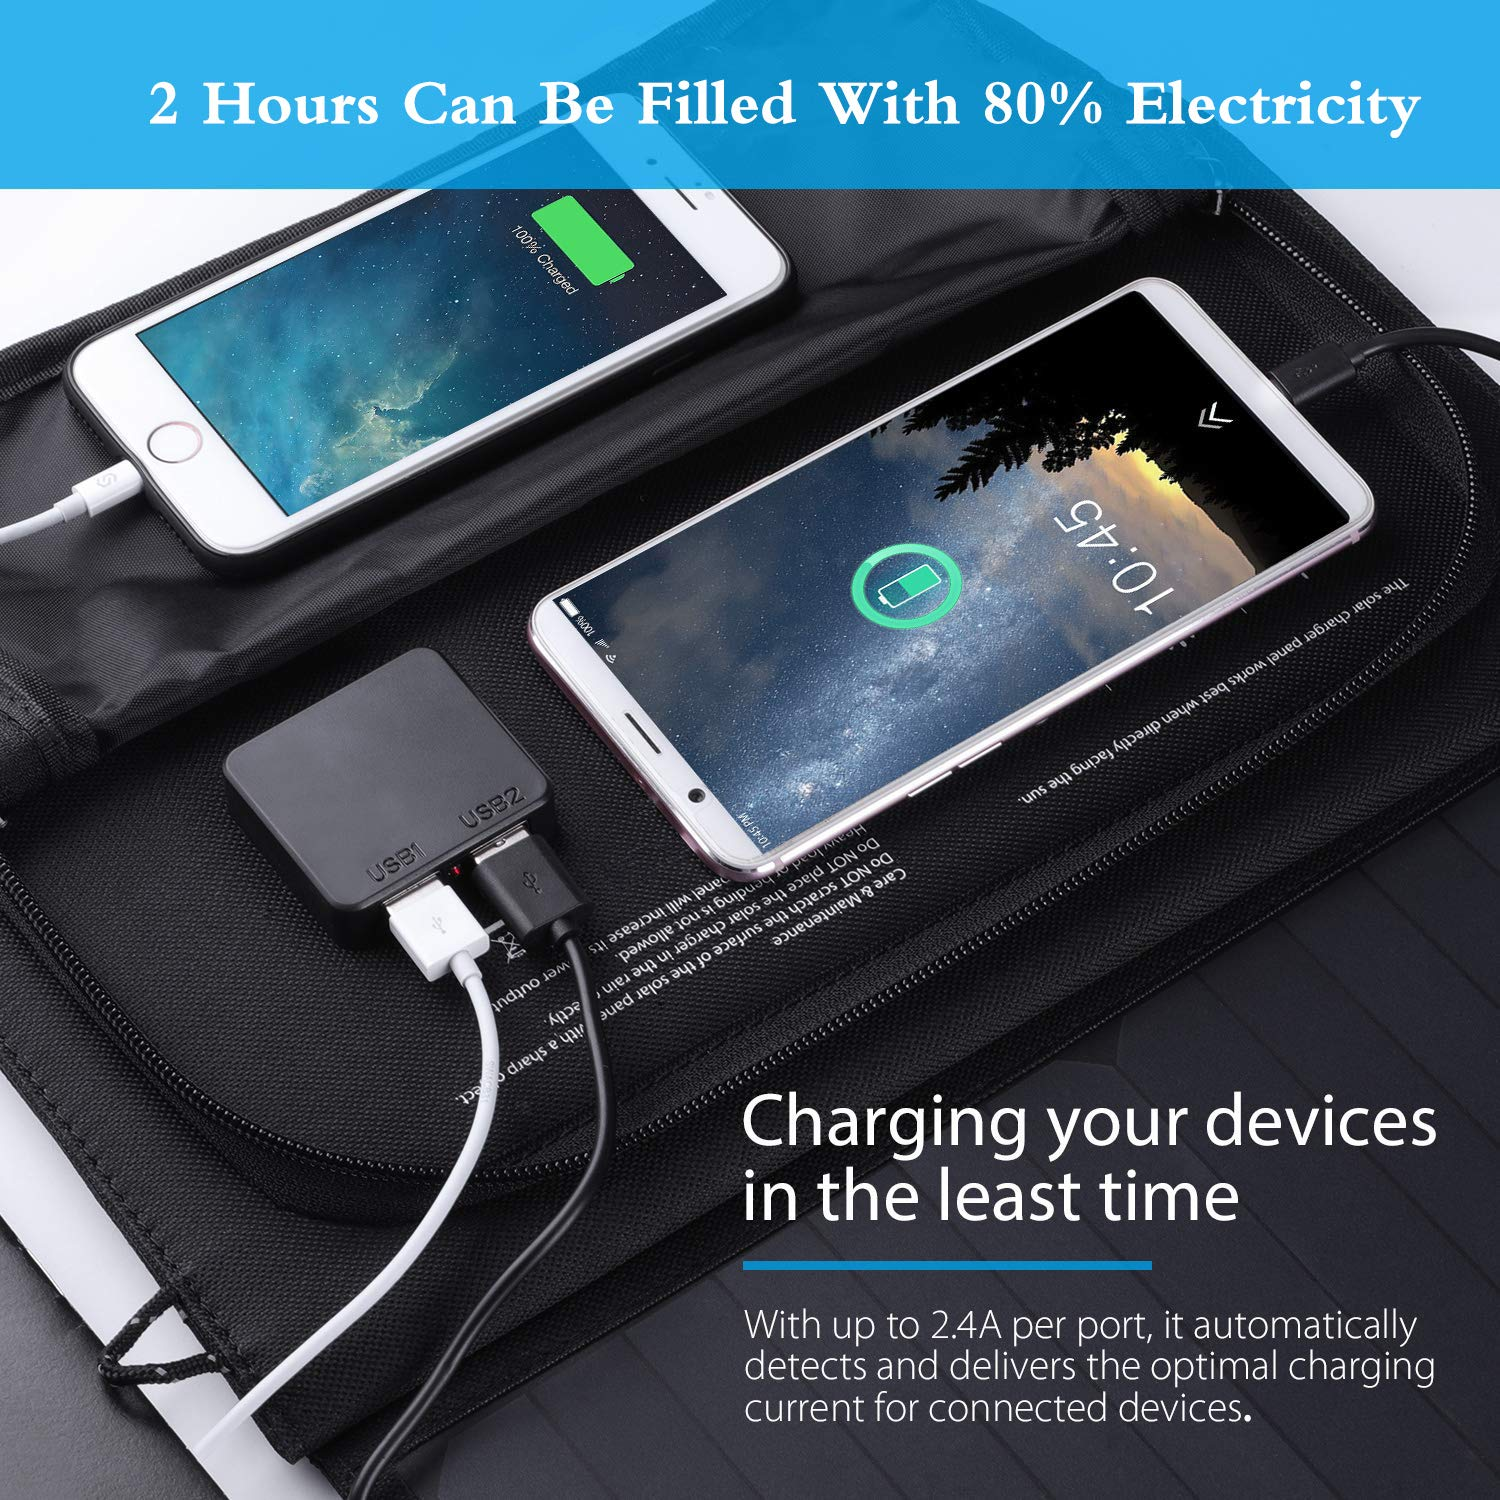 21W Portable Foldable Solar Panel Charger, Dual USB 2.4A Fast Solar Charger,Portable Outdoor Solar Power Charger for Camping,Hiking, Portable Charger for iPhone X 8,iPad,Android,Galaxy S8 Edge,More by WISSBLUE (Image #4)